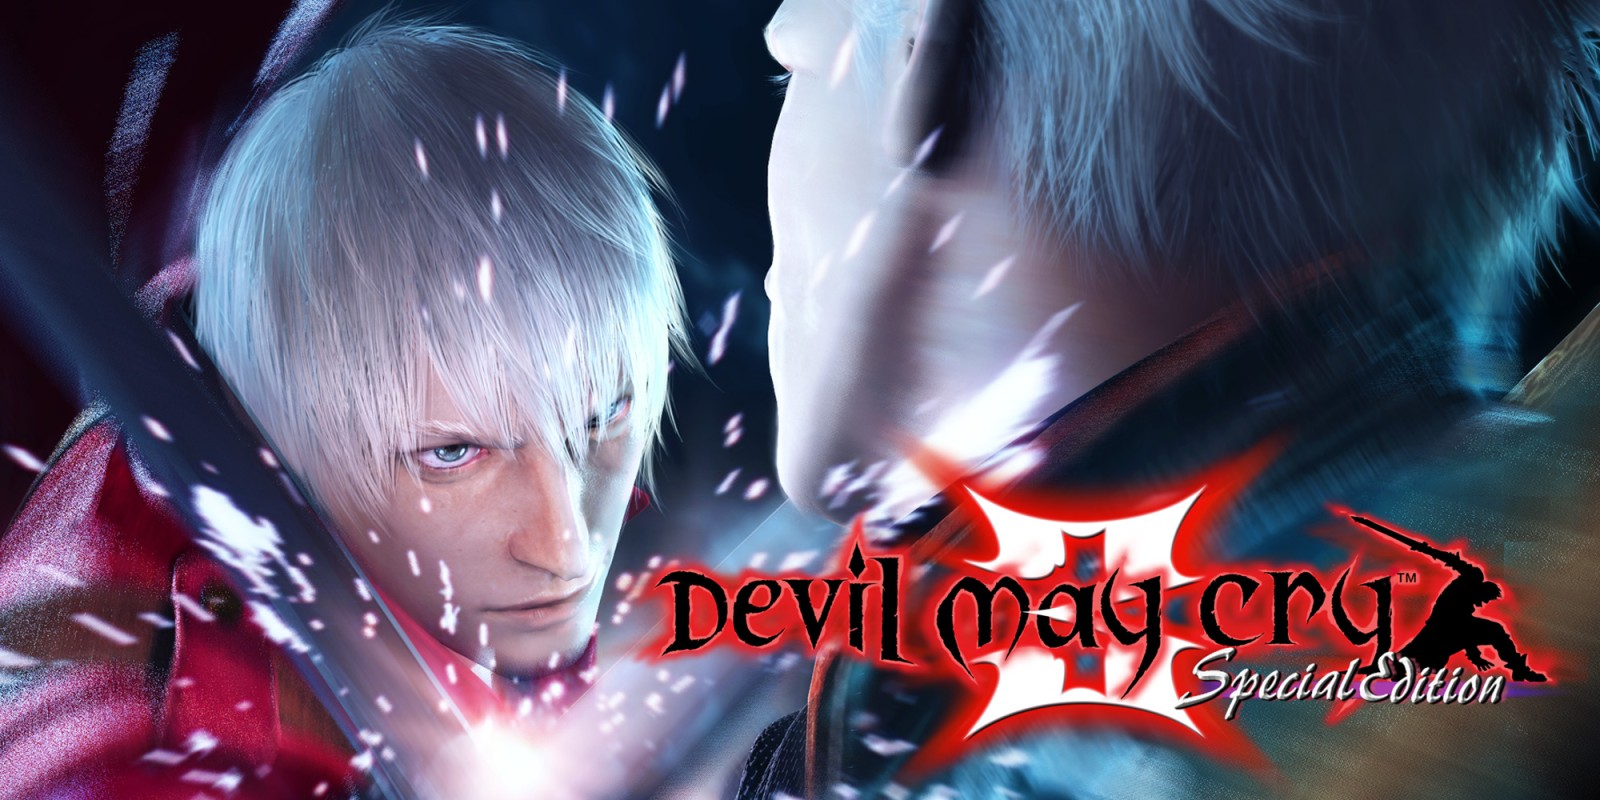 Devil May Cry 3 Special Edition